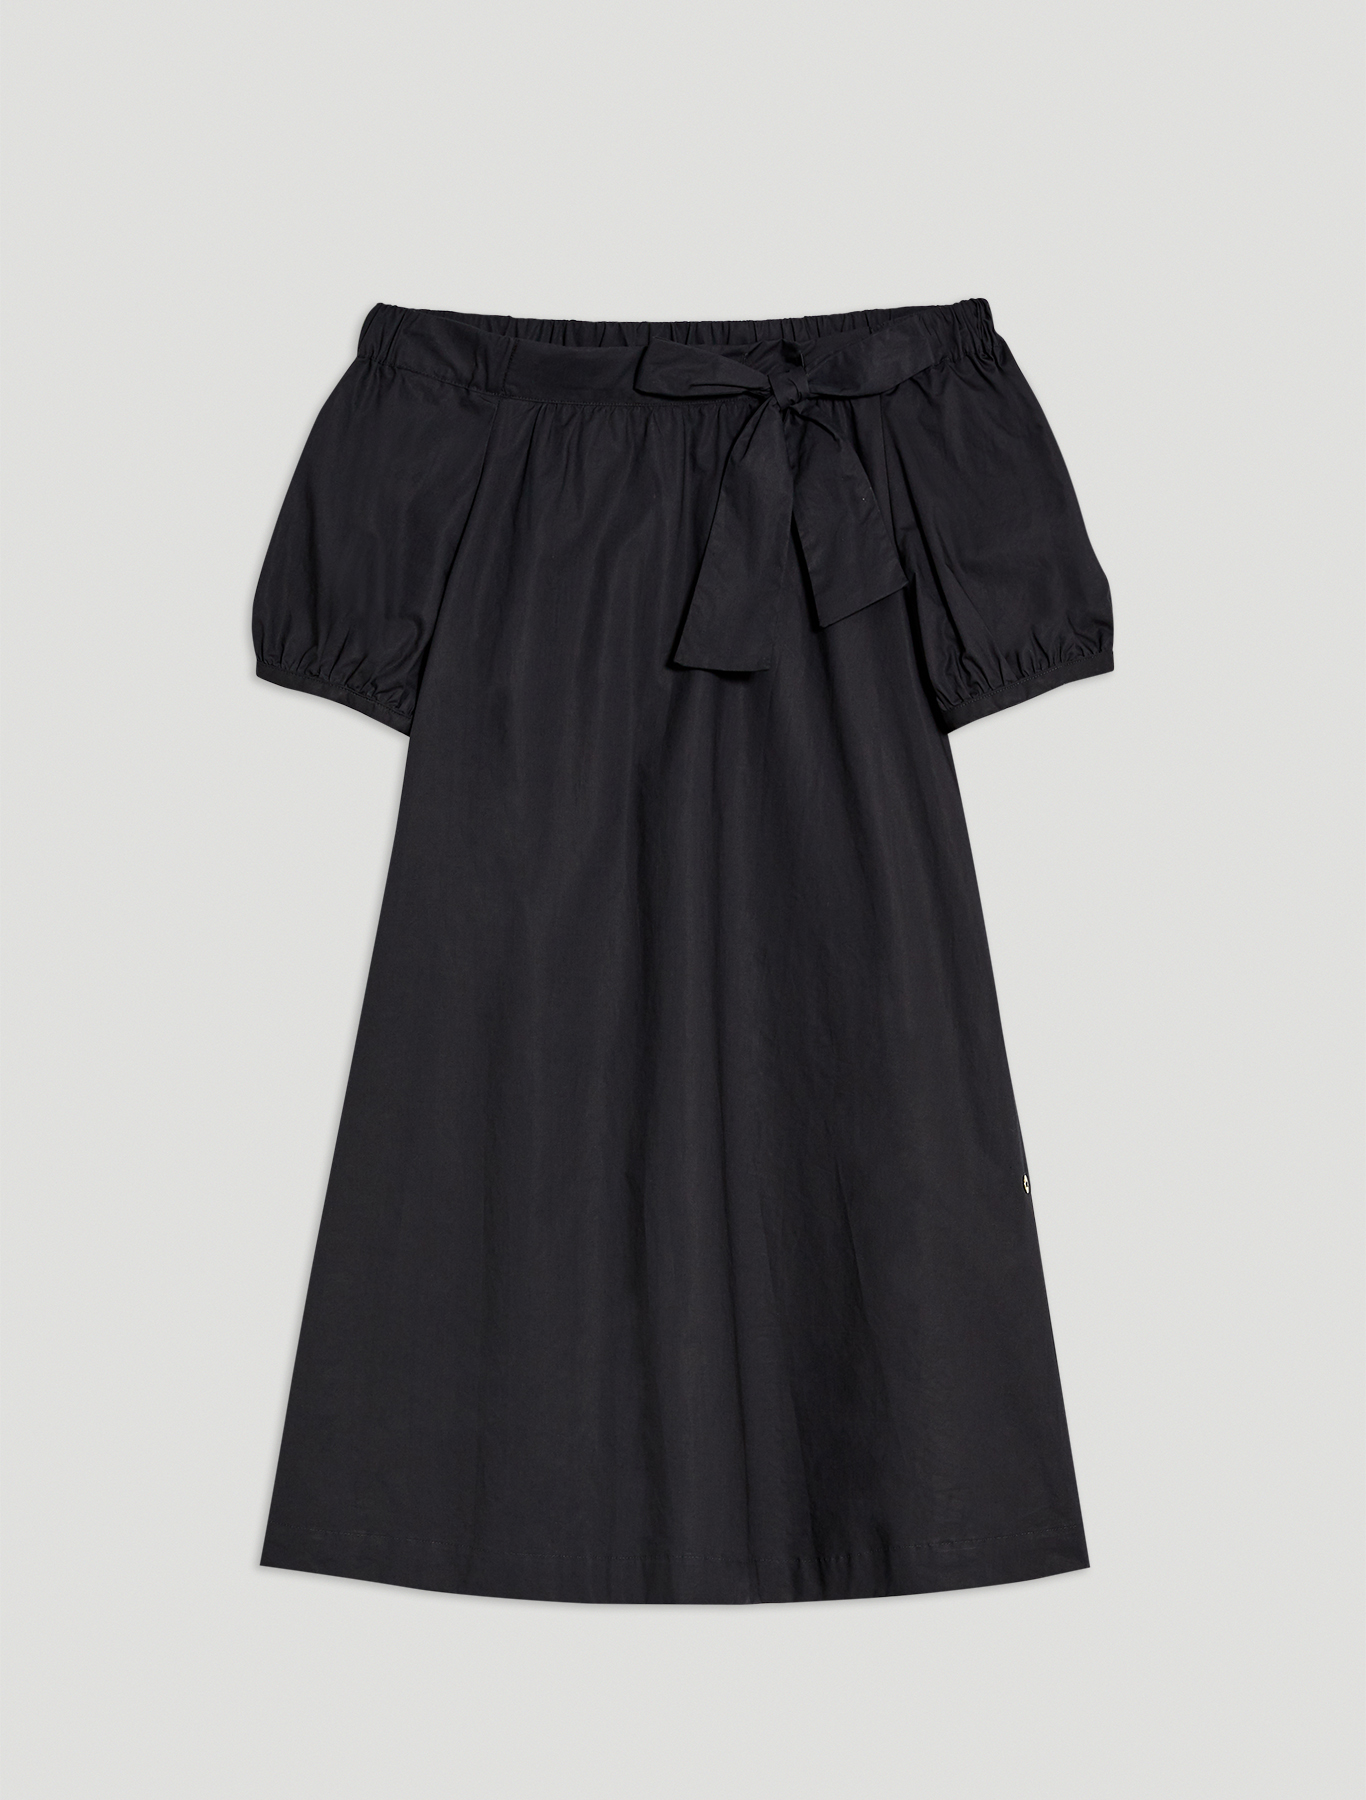 Cotton poplin dress - black - pennyblack